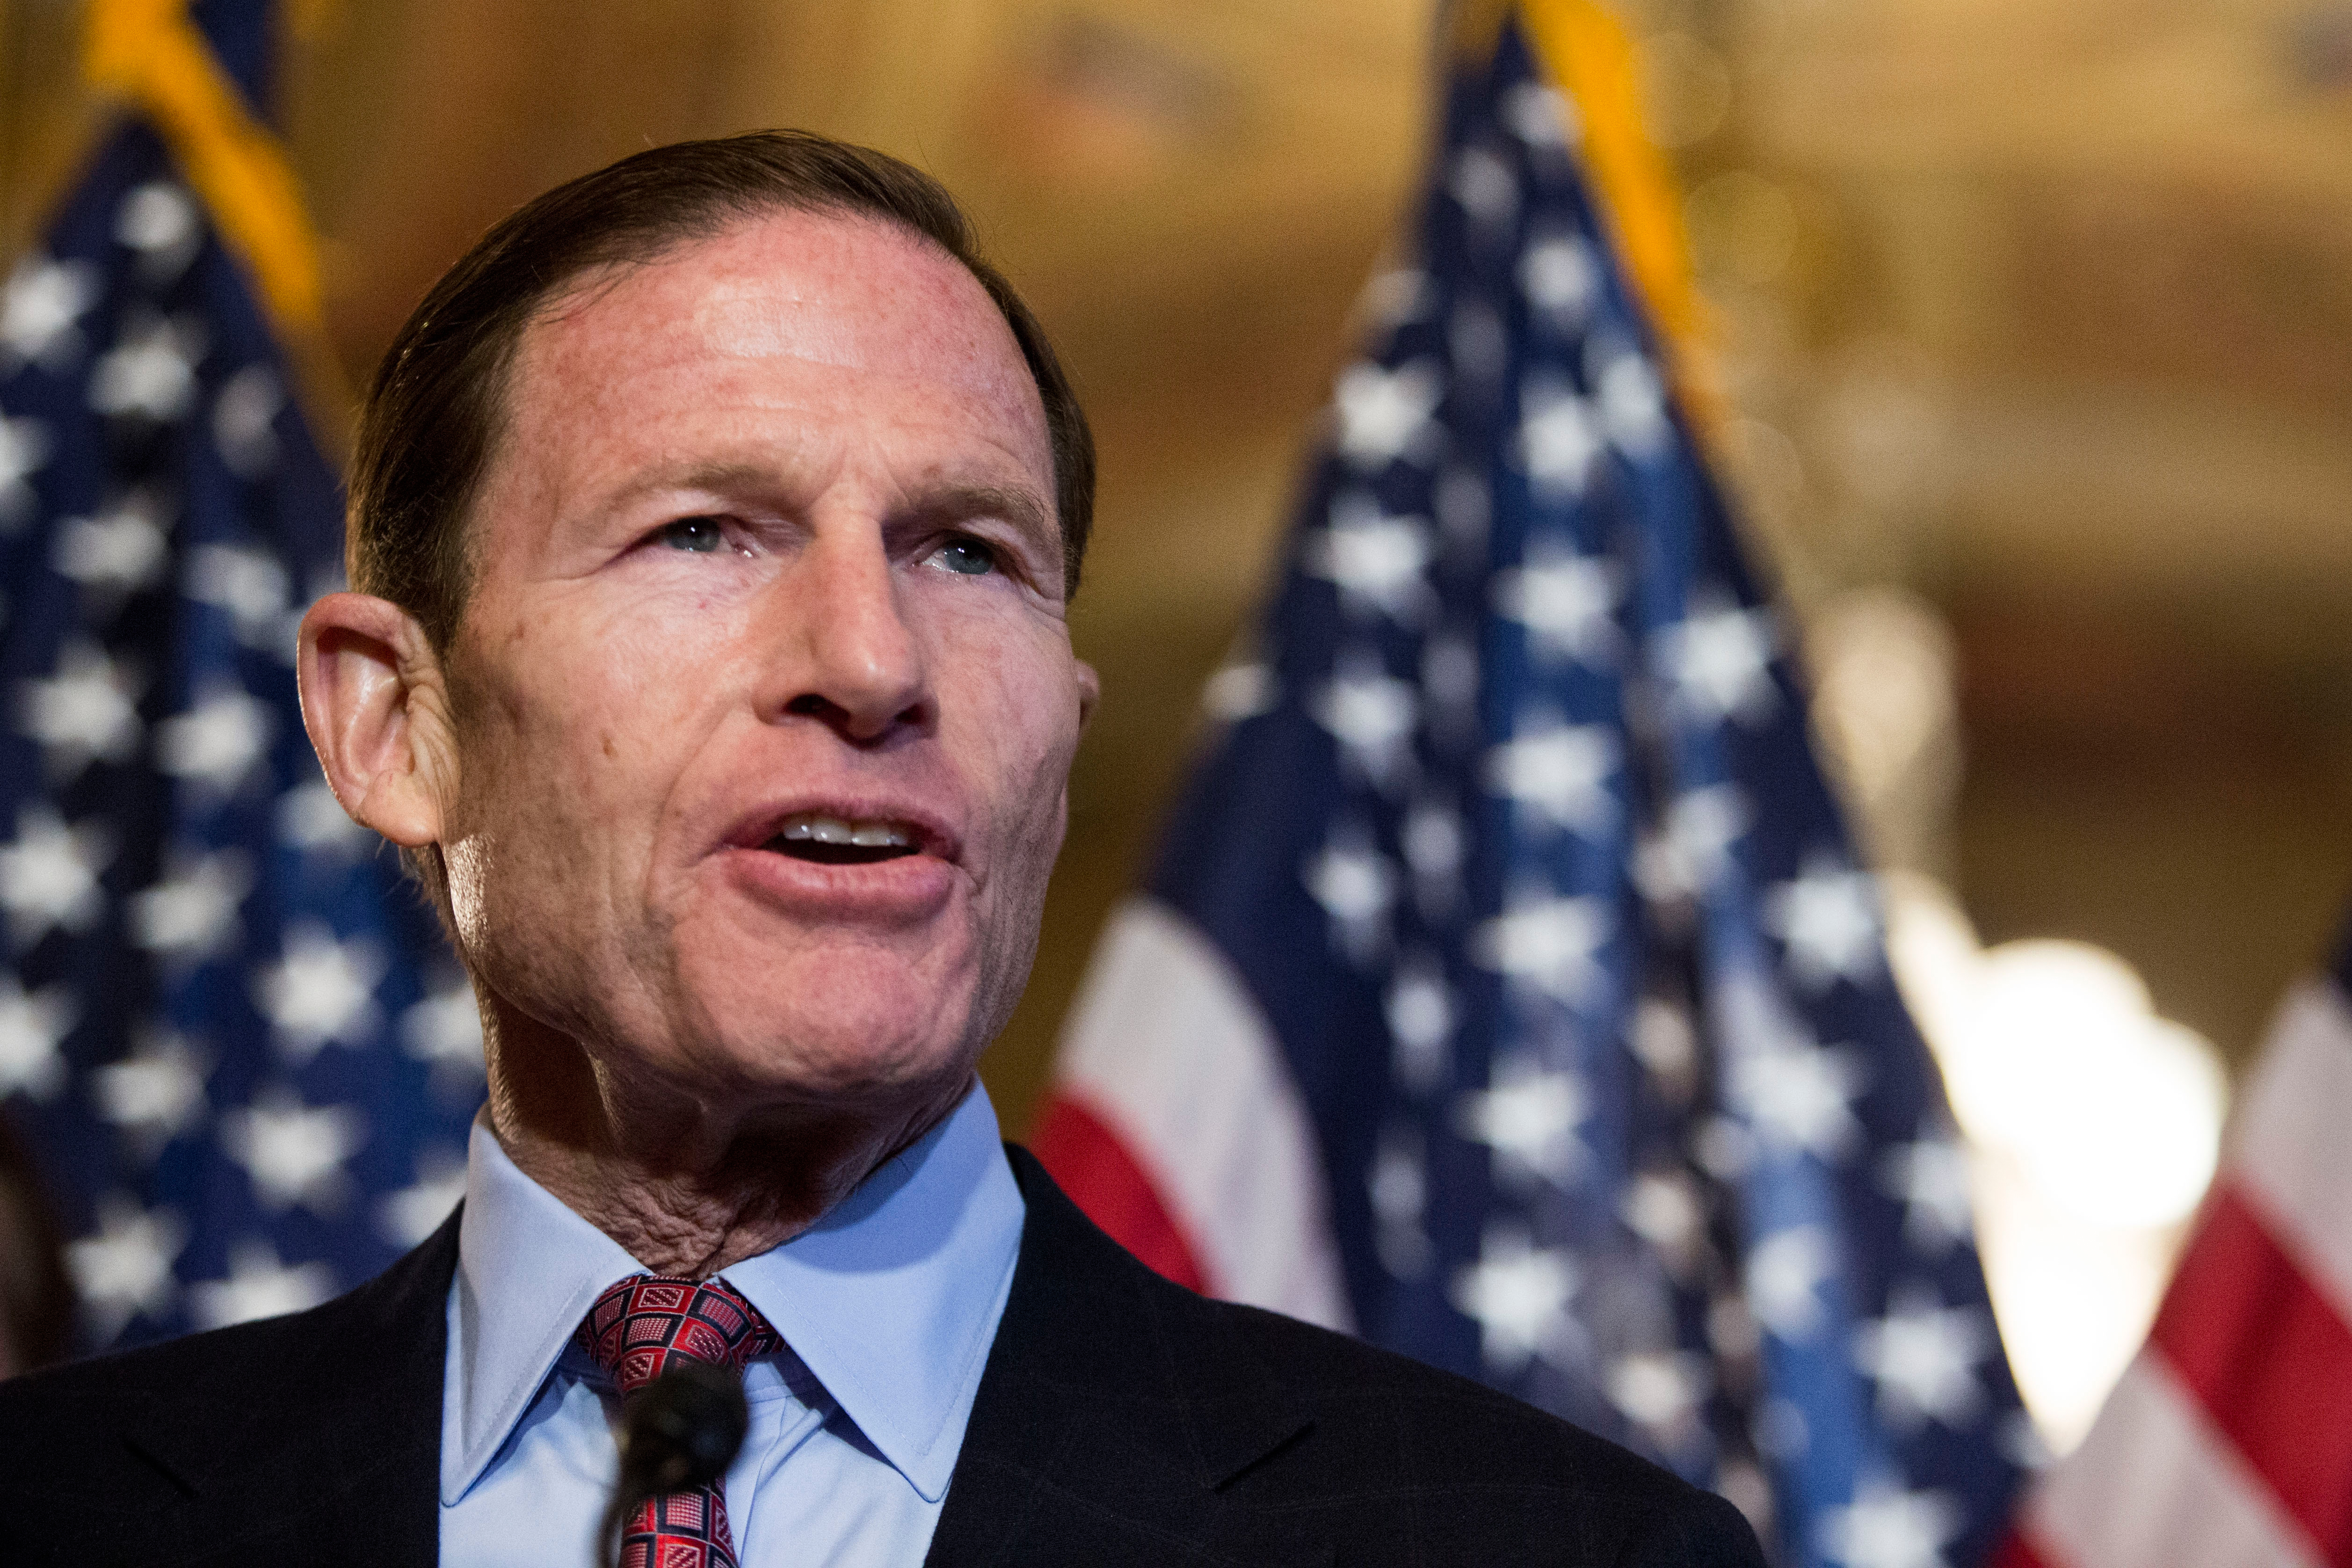 Sen. Richard Blumenthal (D-CT) speaks during a news conference on Capitol Hill, December 10, 2014 in Washington, DC.